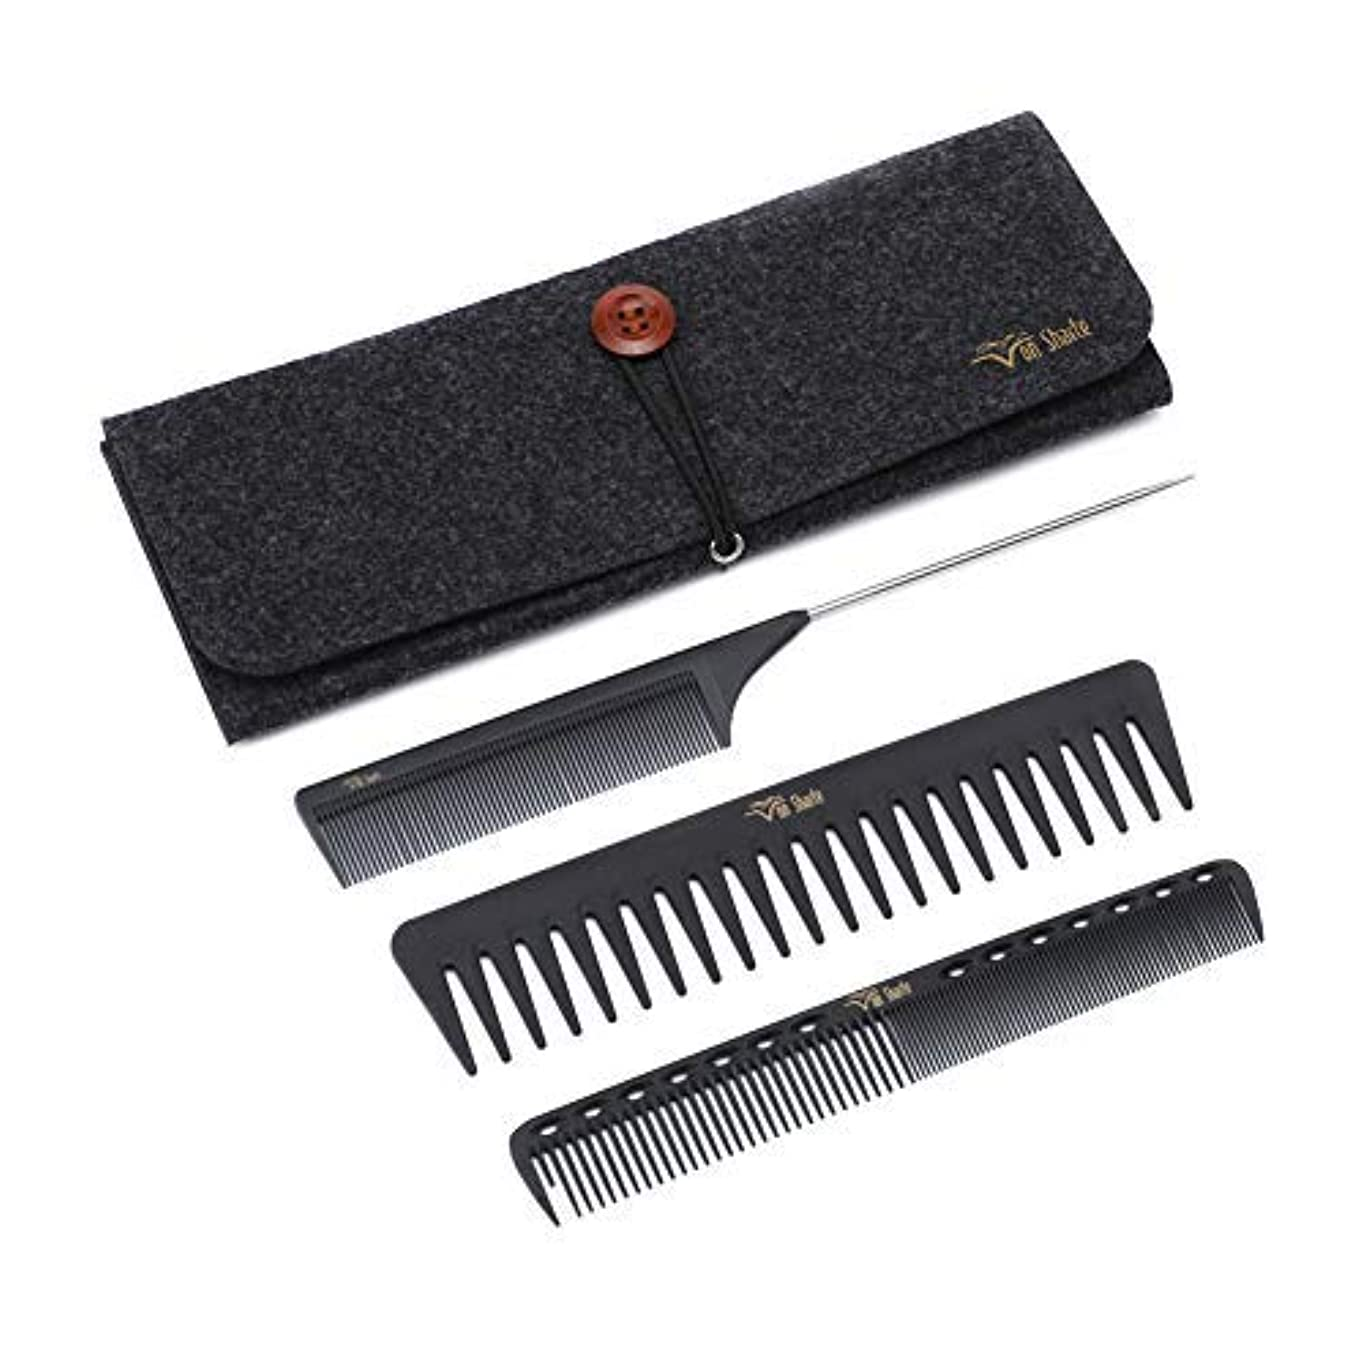 融合ブルーベル差別するStyling Comb Set,Hairdresser Barber Comb Cutting Hair Comb Carbon Fiber Wide Tooth Comb Metal Rat Pin Tail Comb...